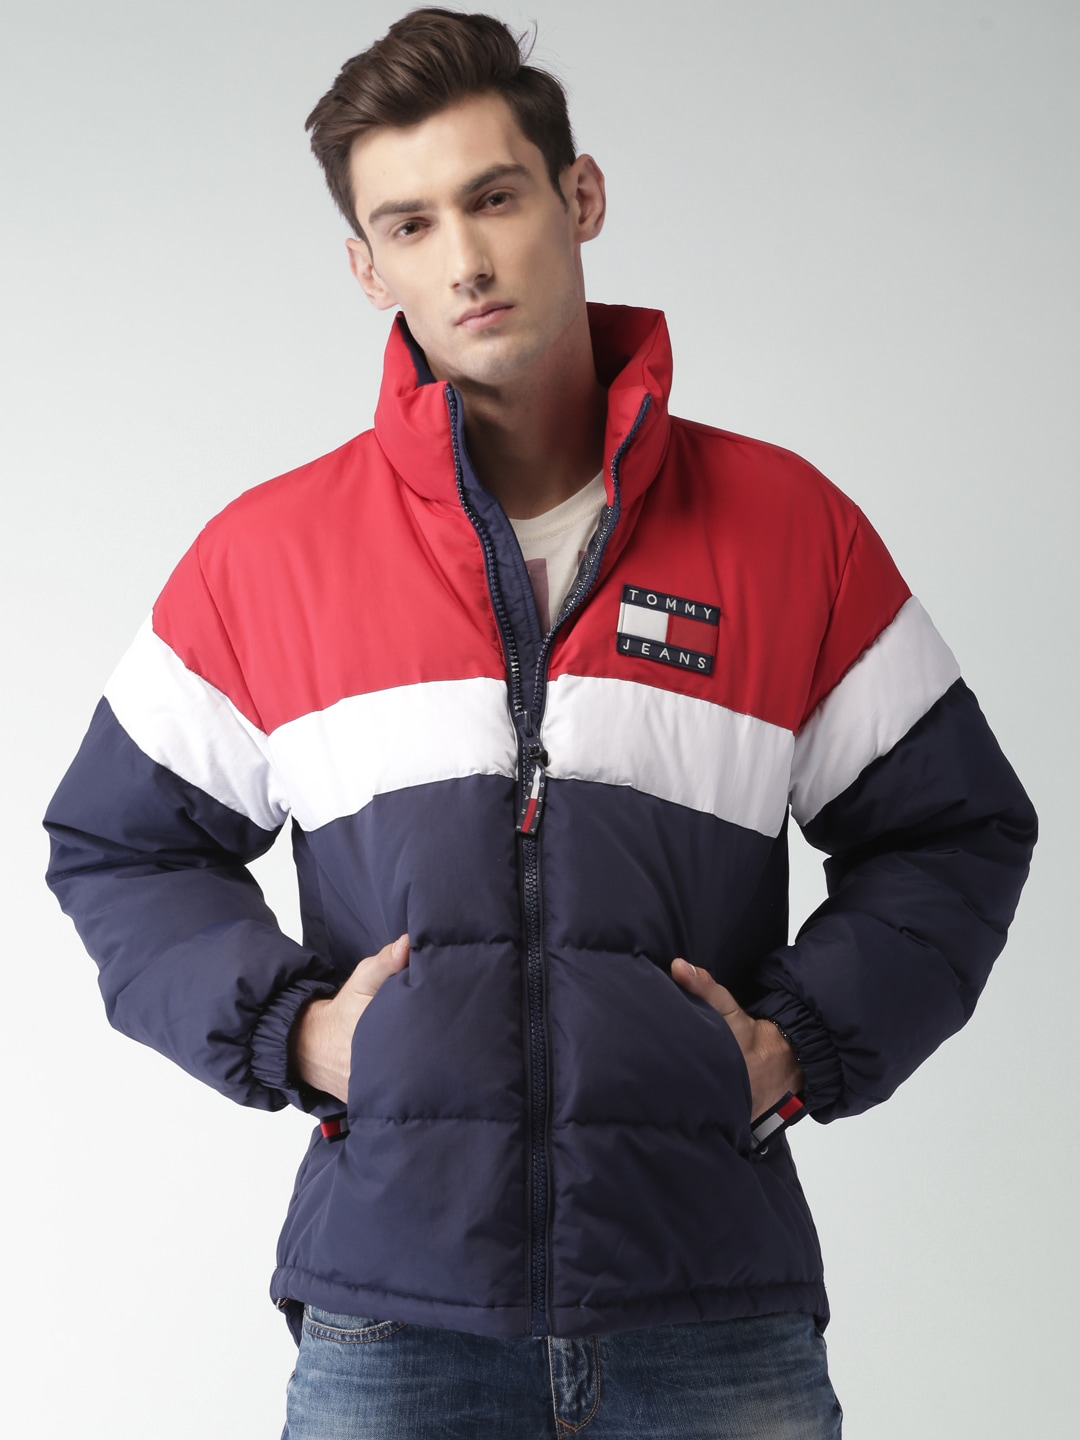 Tommy Hilfiger Nylon Jackets Buy Tommy Hilfiger Nylon Jackets